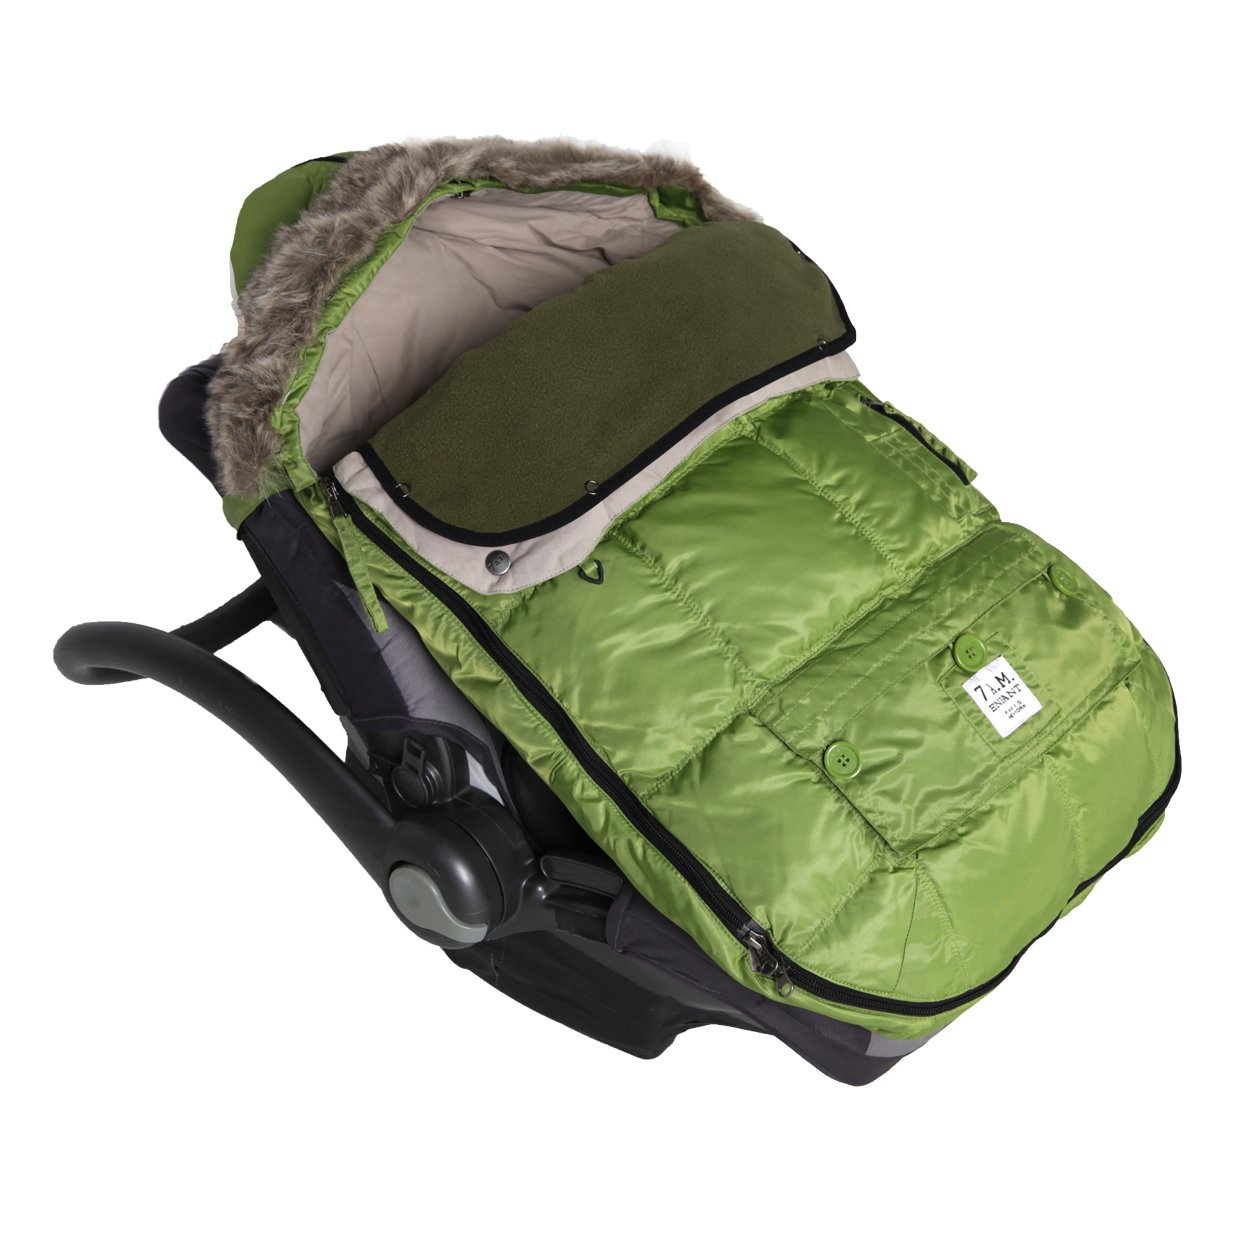 7AM EnfantLe Sac Igloo Footmuff, Converts into a Single Panel Stroller and Car Seat Cover - Café, Large 7 A.M. ENFANT LS500L-CA